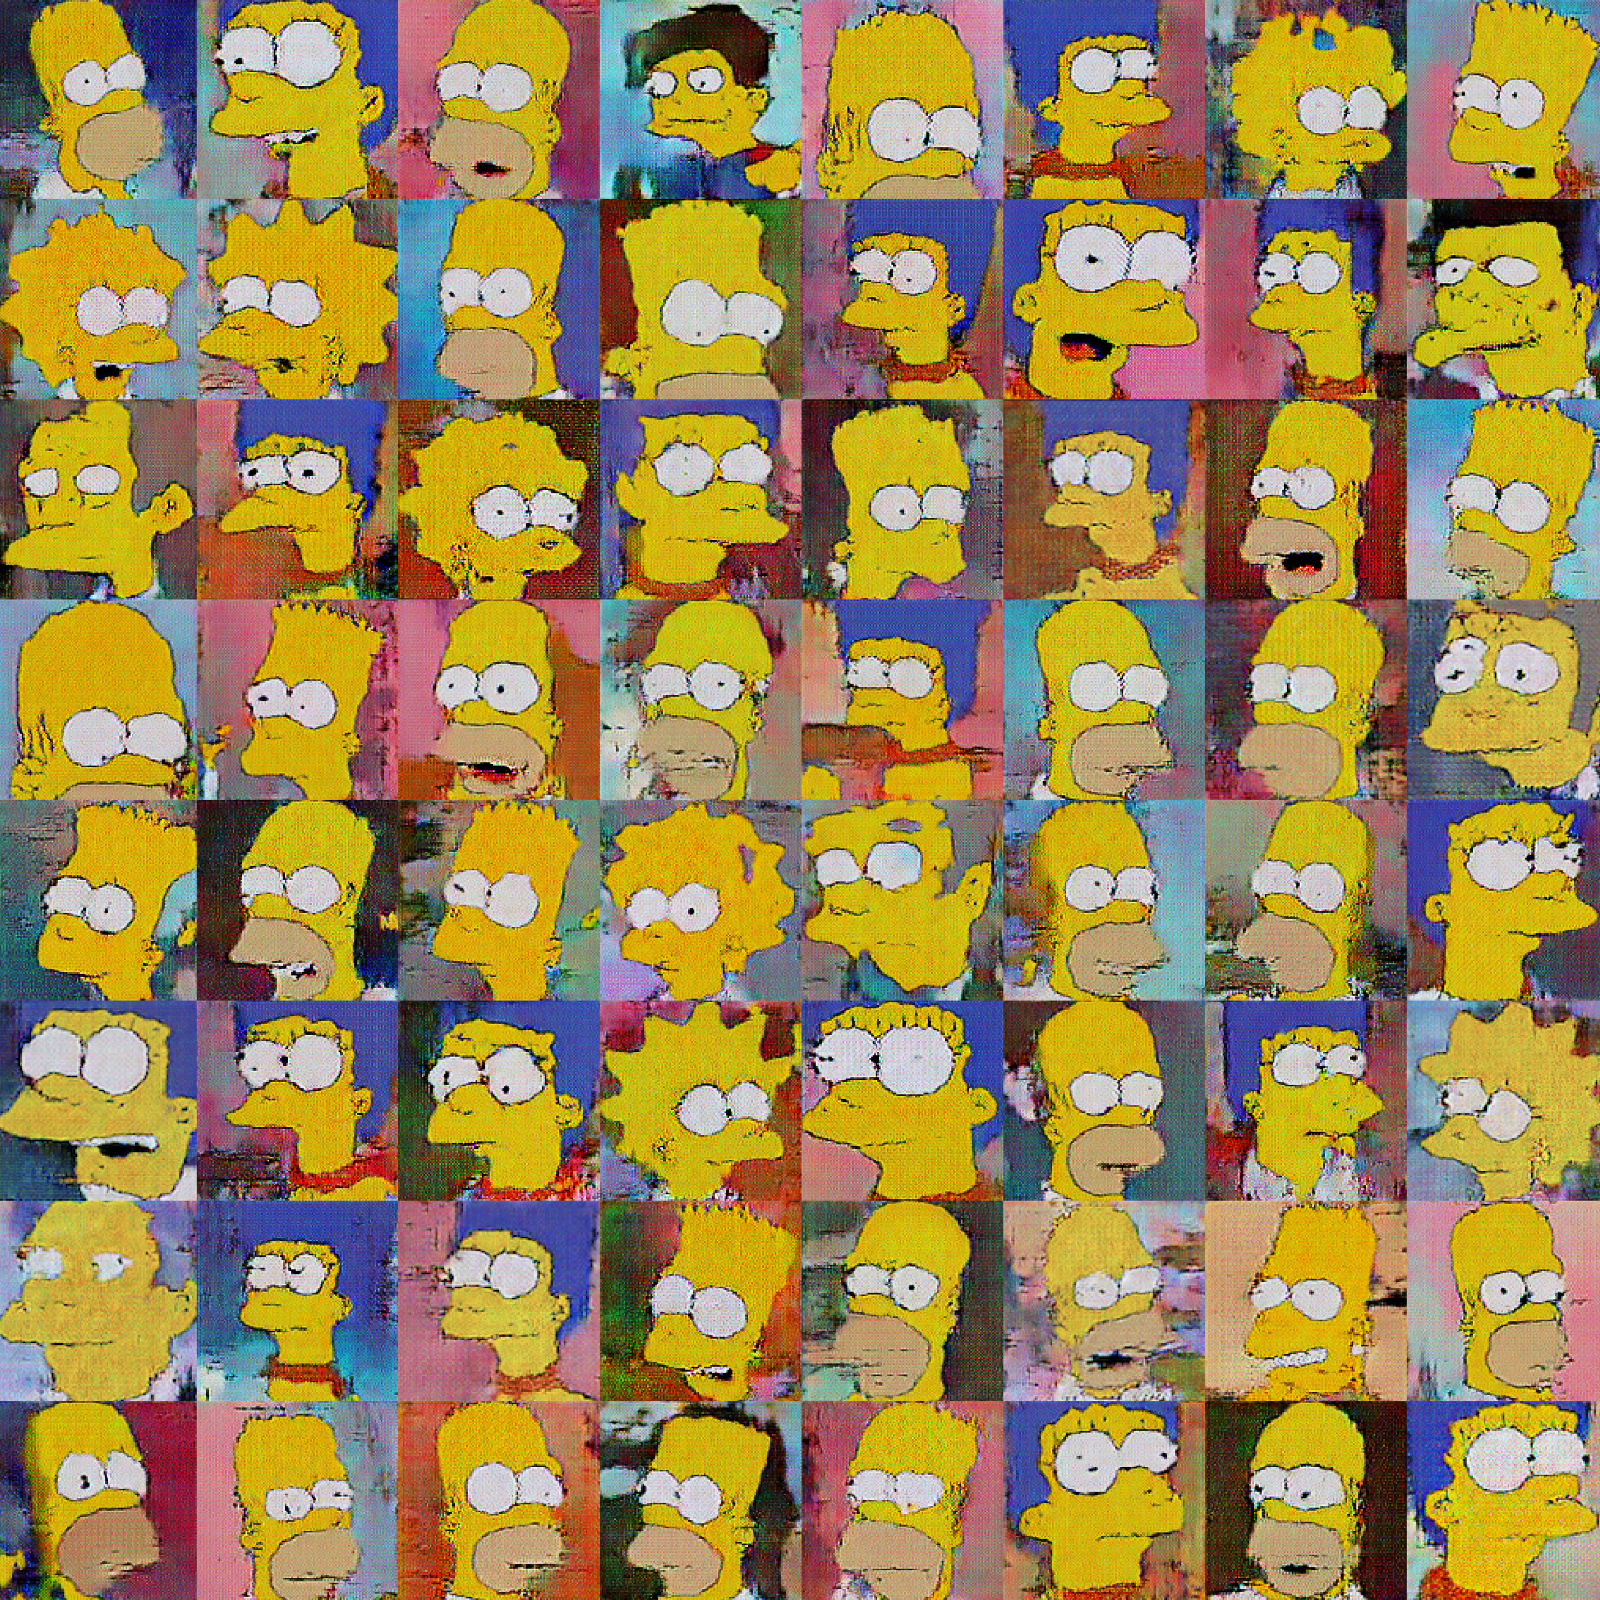 Image Generator - Drawing Cartoons with Generative Adversarial Networks